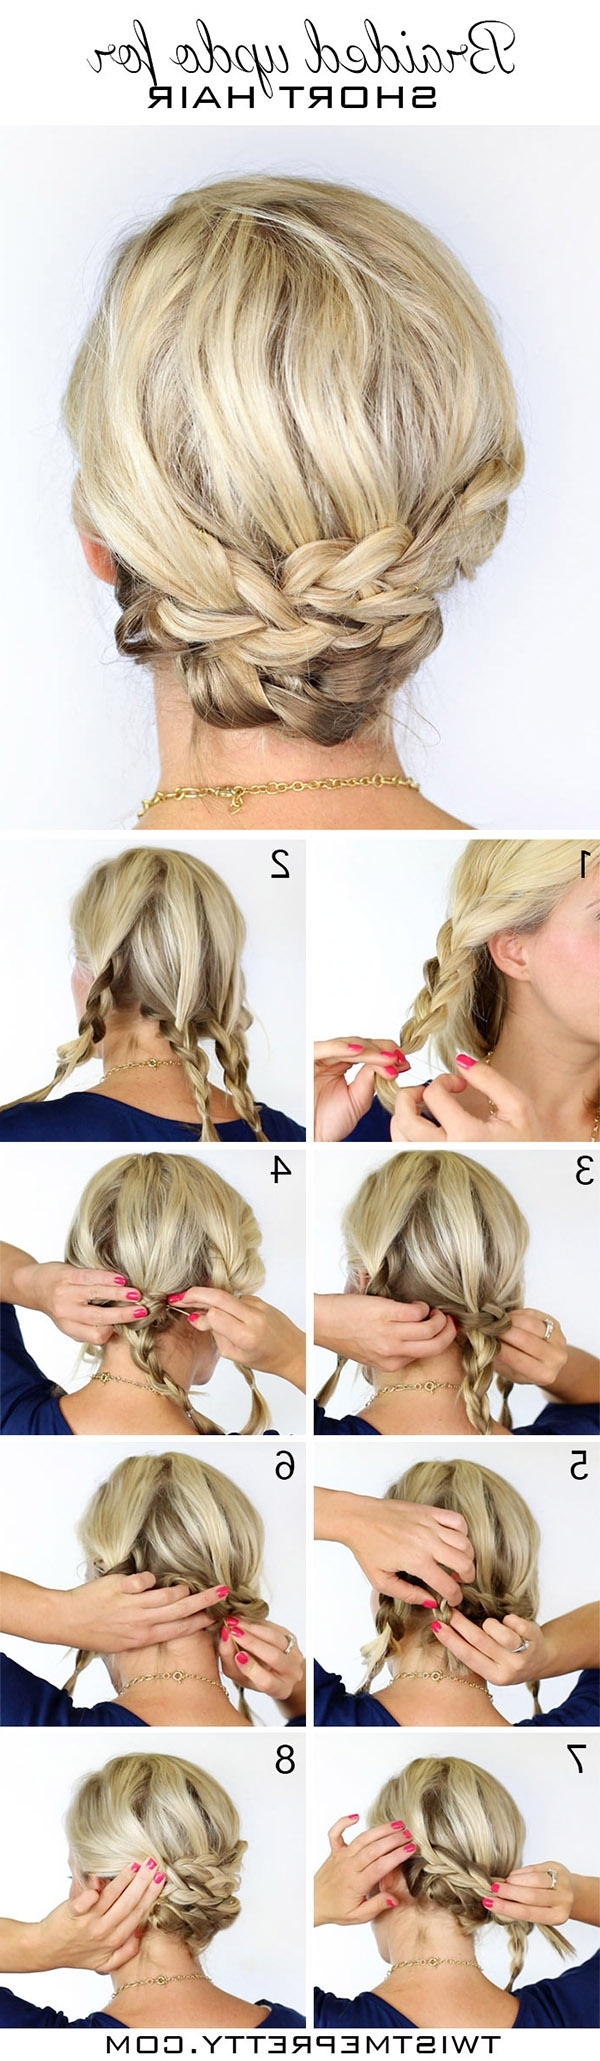 20 Diy Wedding Hairstyles With Tutorials To Try On Your Own 20+ Adorable Diy Wedding Hairstyles For Medium Hair